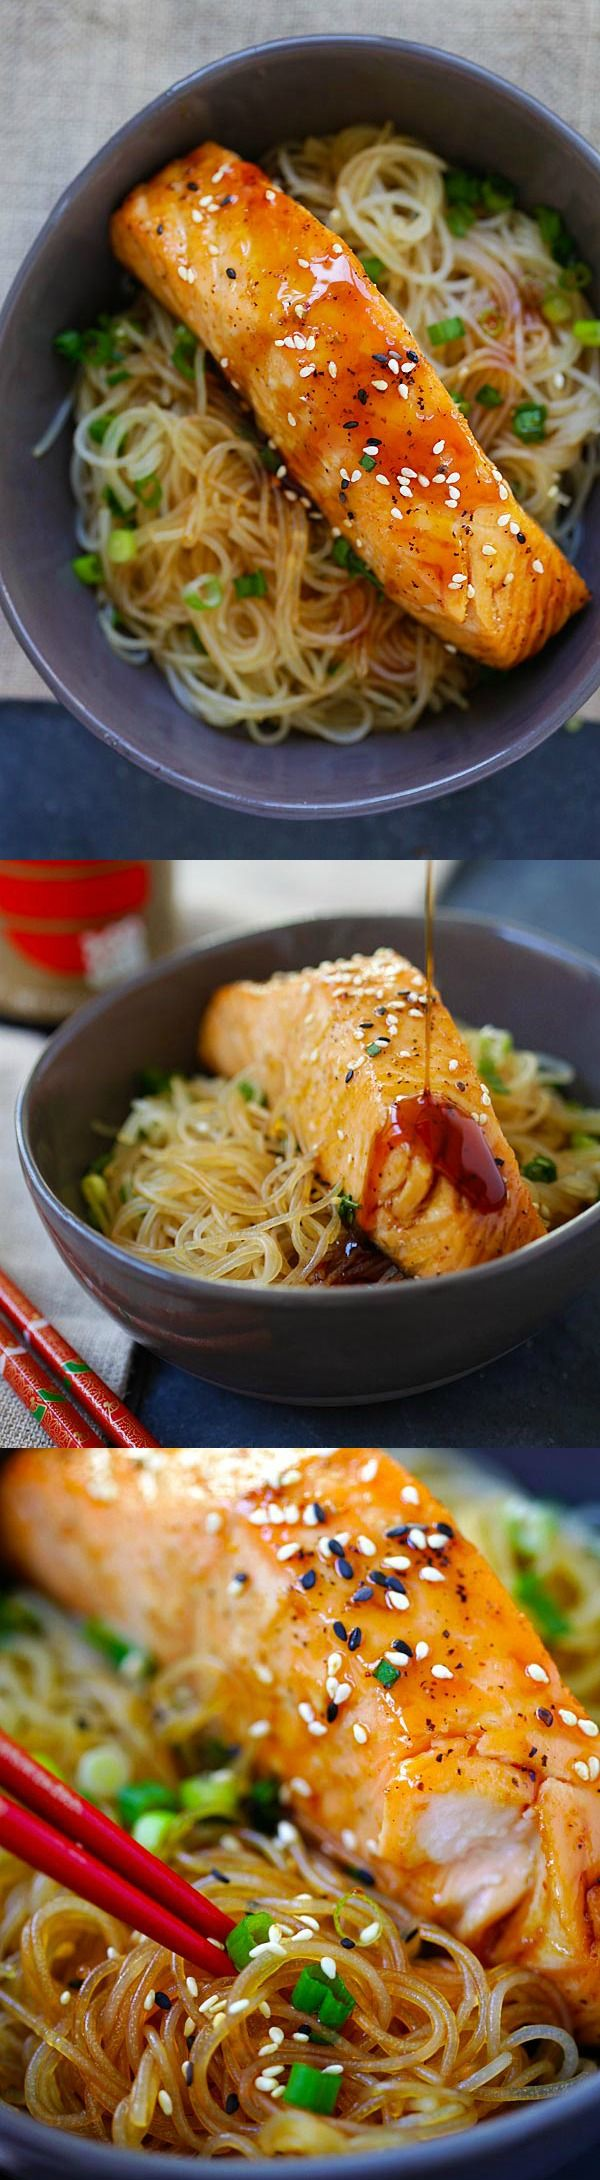 Moist and juicy salmon and rice noodles made with San-J Tamari. Gluten-free, healthy family weeknight dinner.